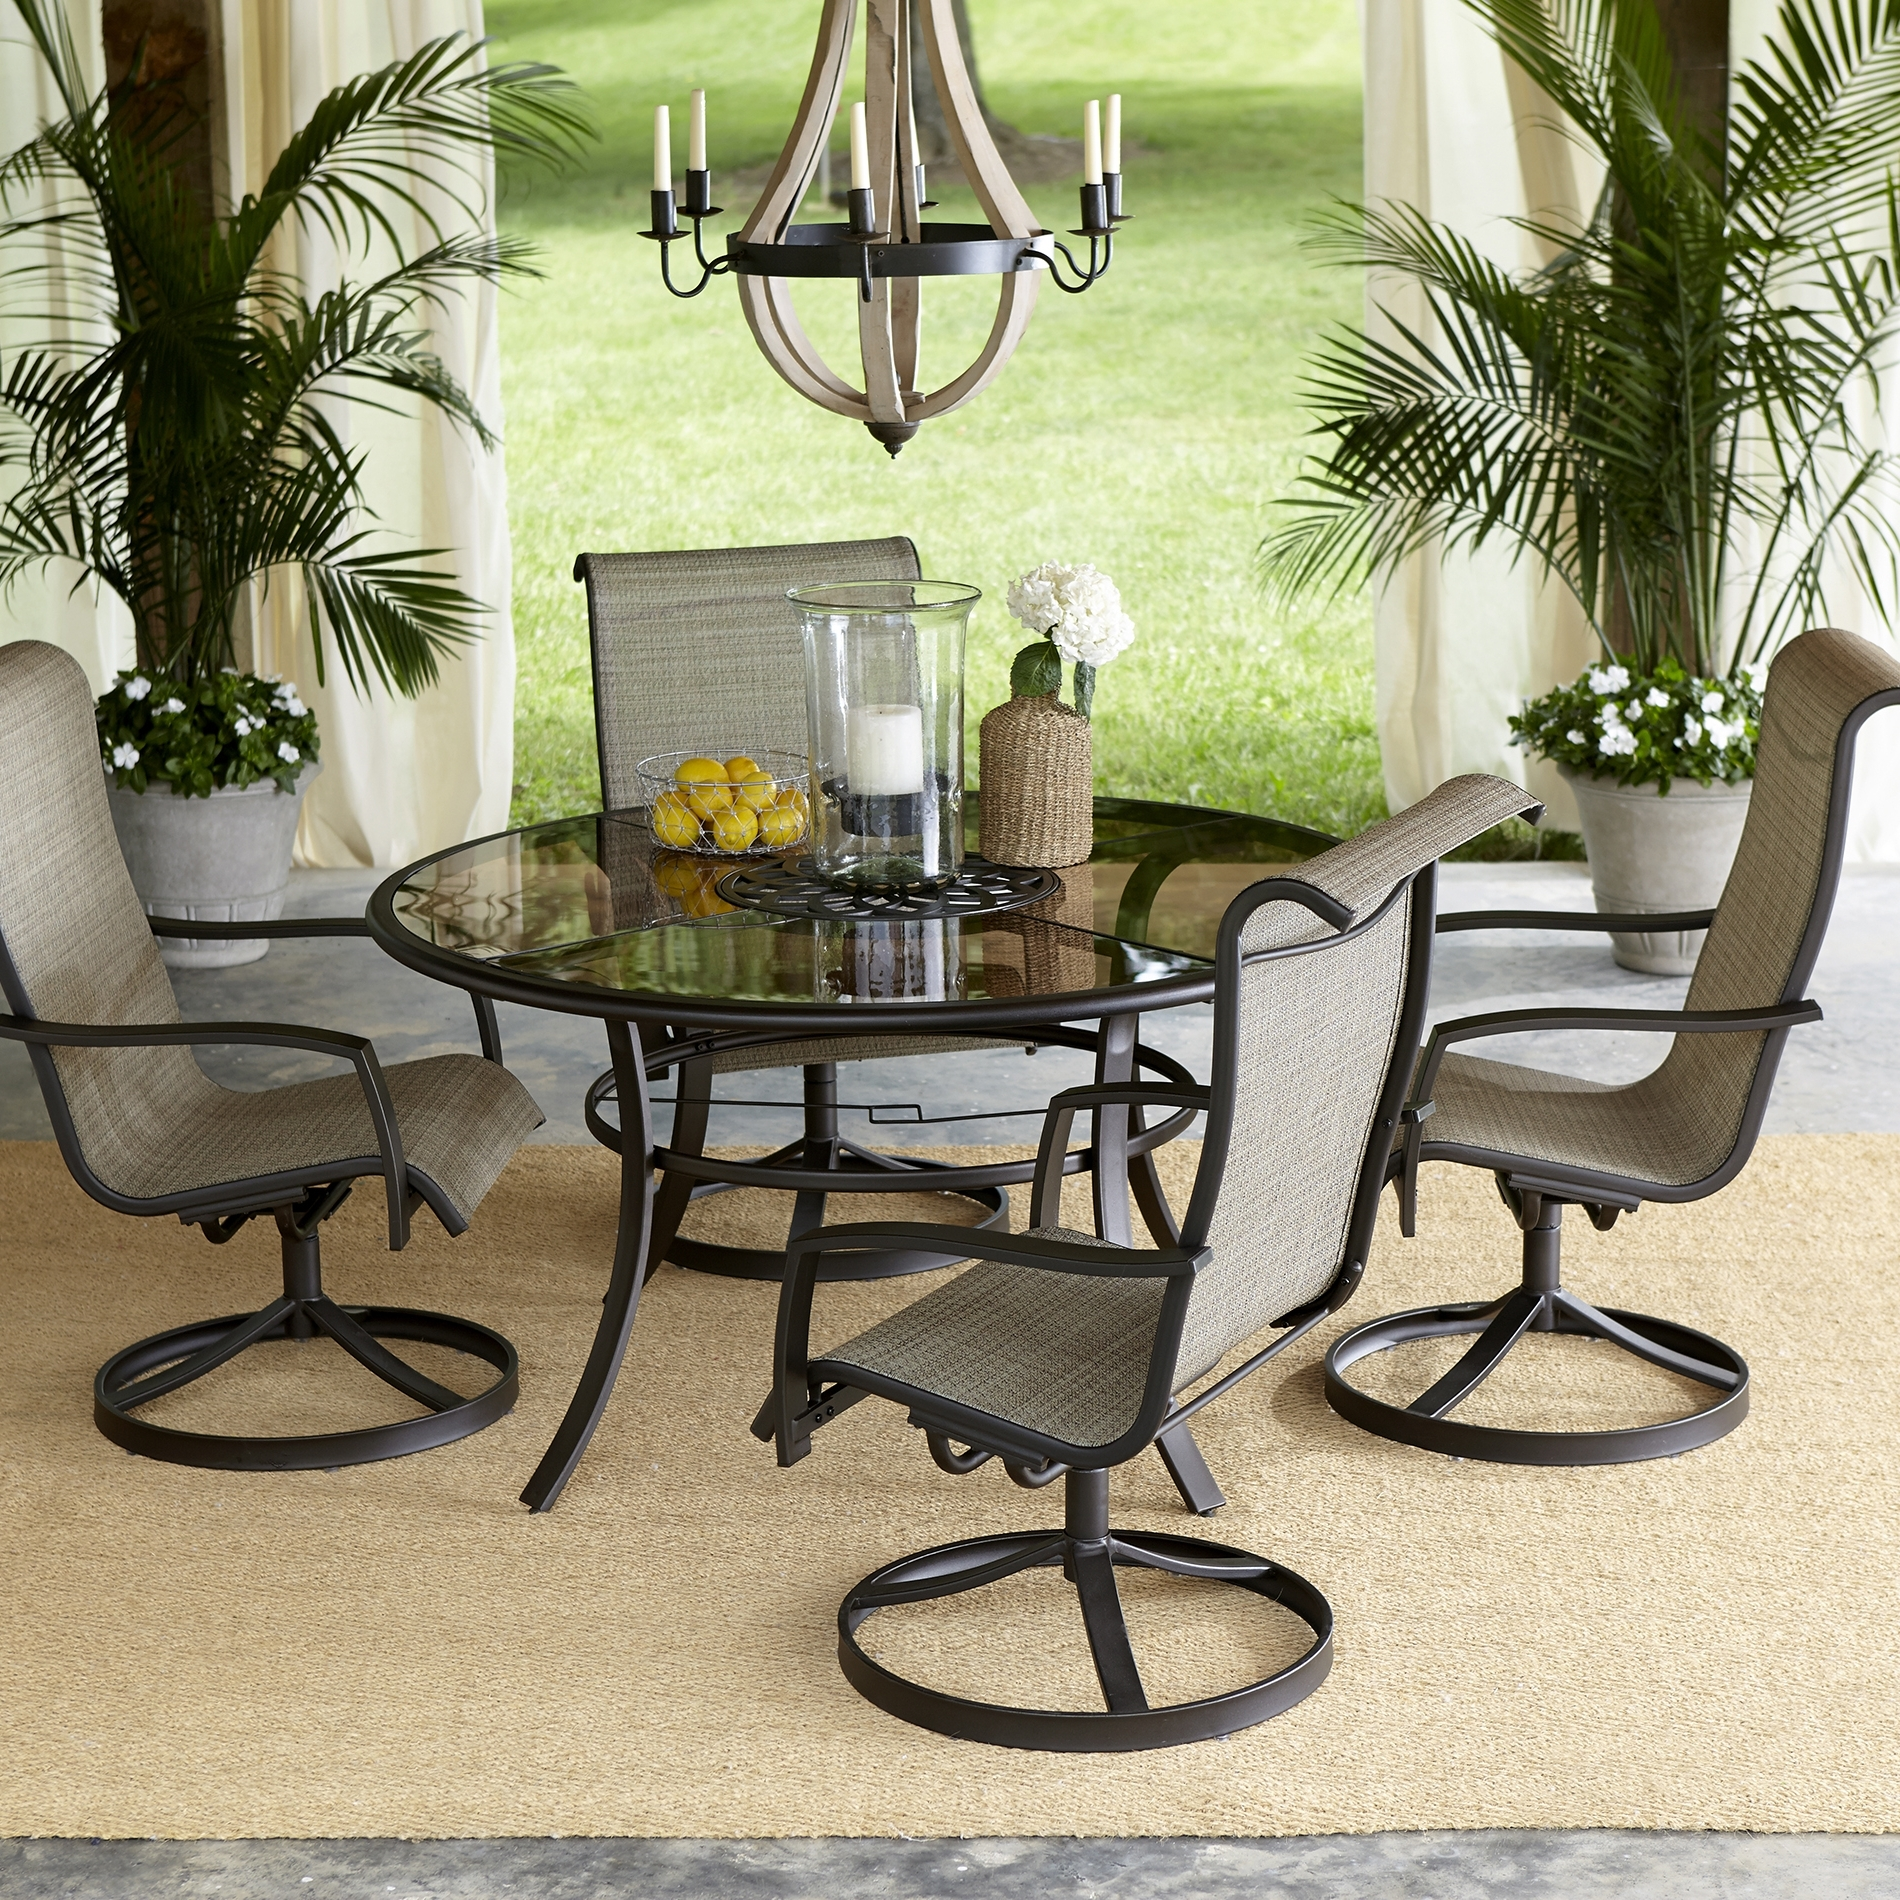 Patio Conversation Dining Sets For Preferred Patio Dining Sets Round Table Furniture Alluring Beautiful Tables (View 7 of 15)